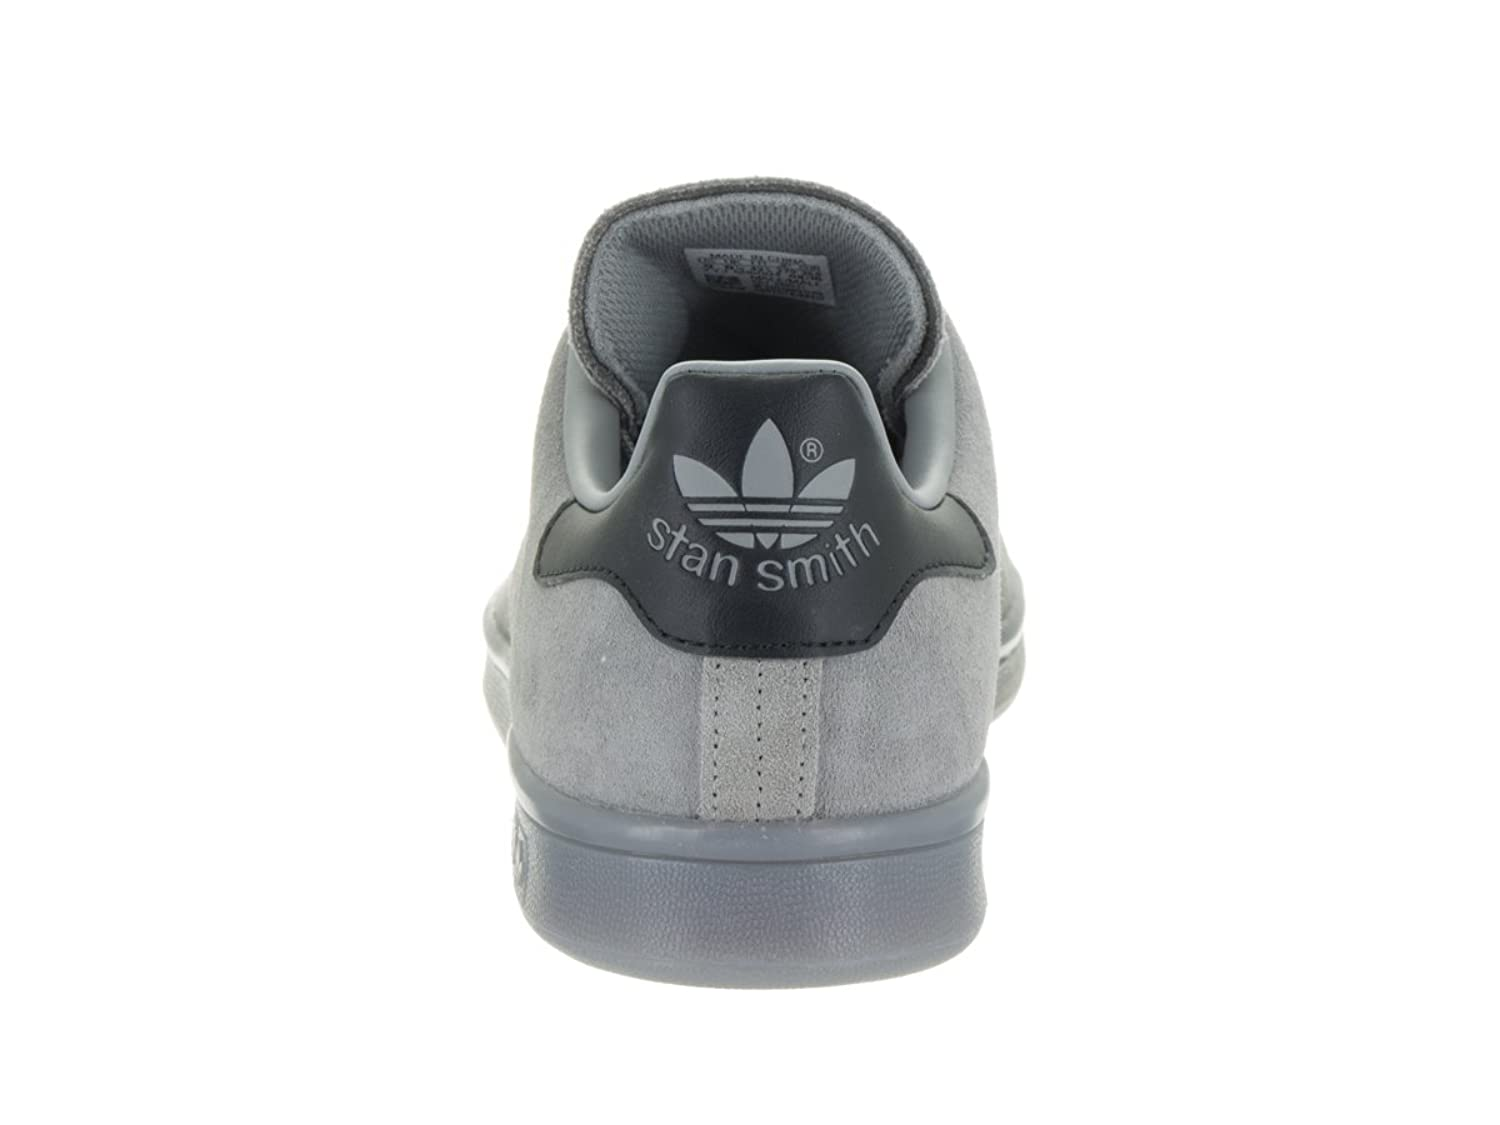 Adidas hombre 's Stan Smith Charcoal GRIS tobillo alto